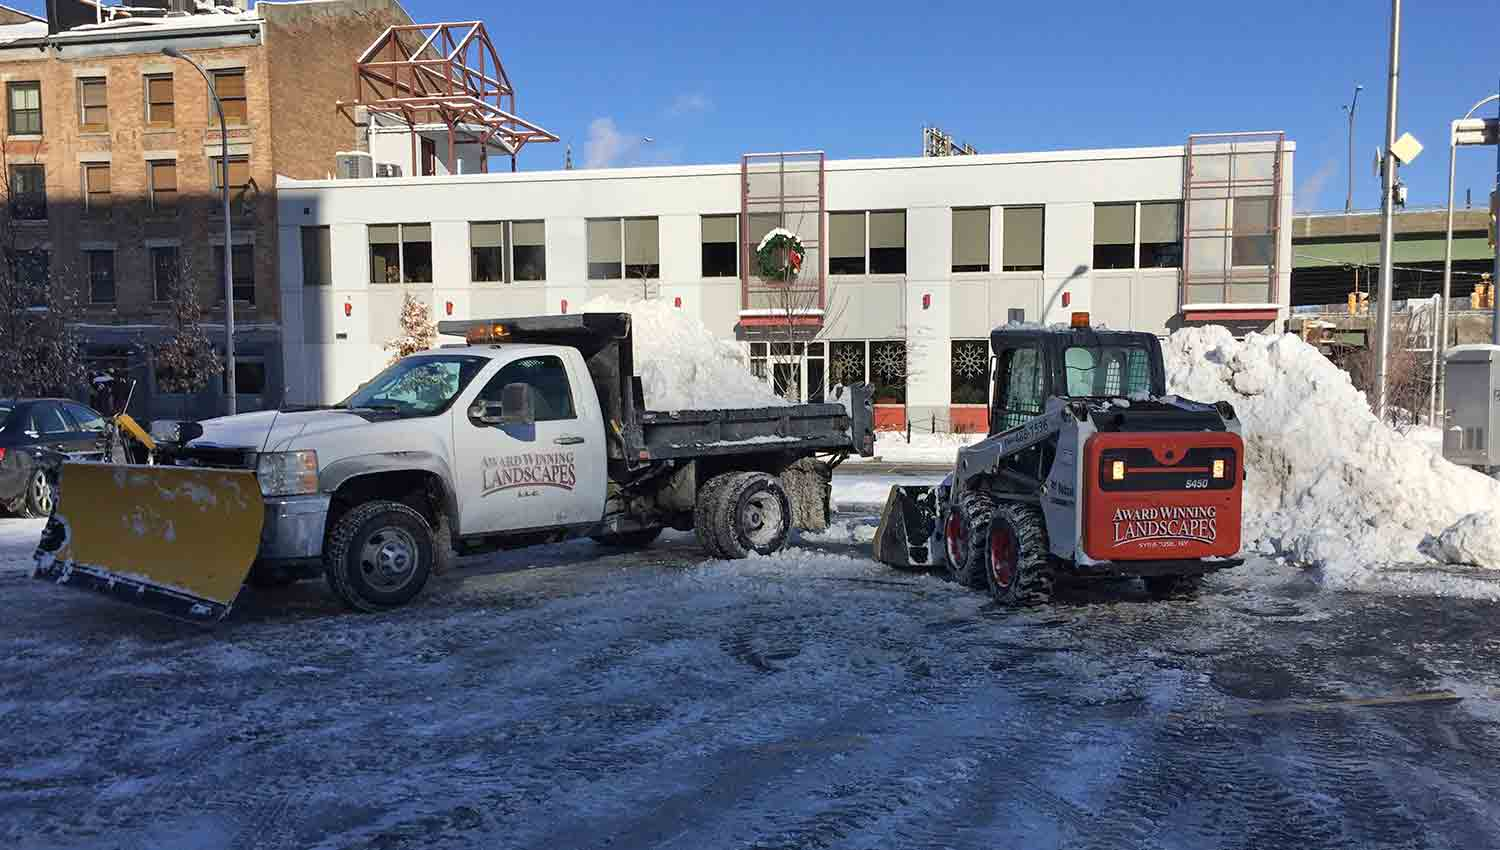 Snow removal service at a downtown syracuse business